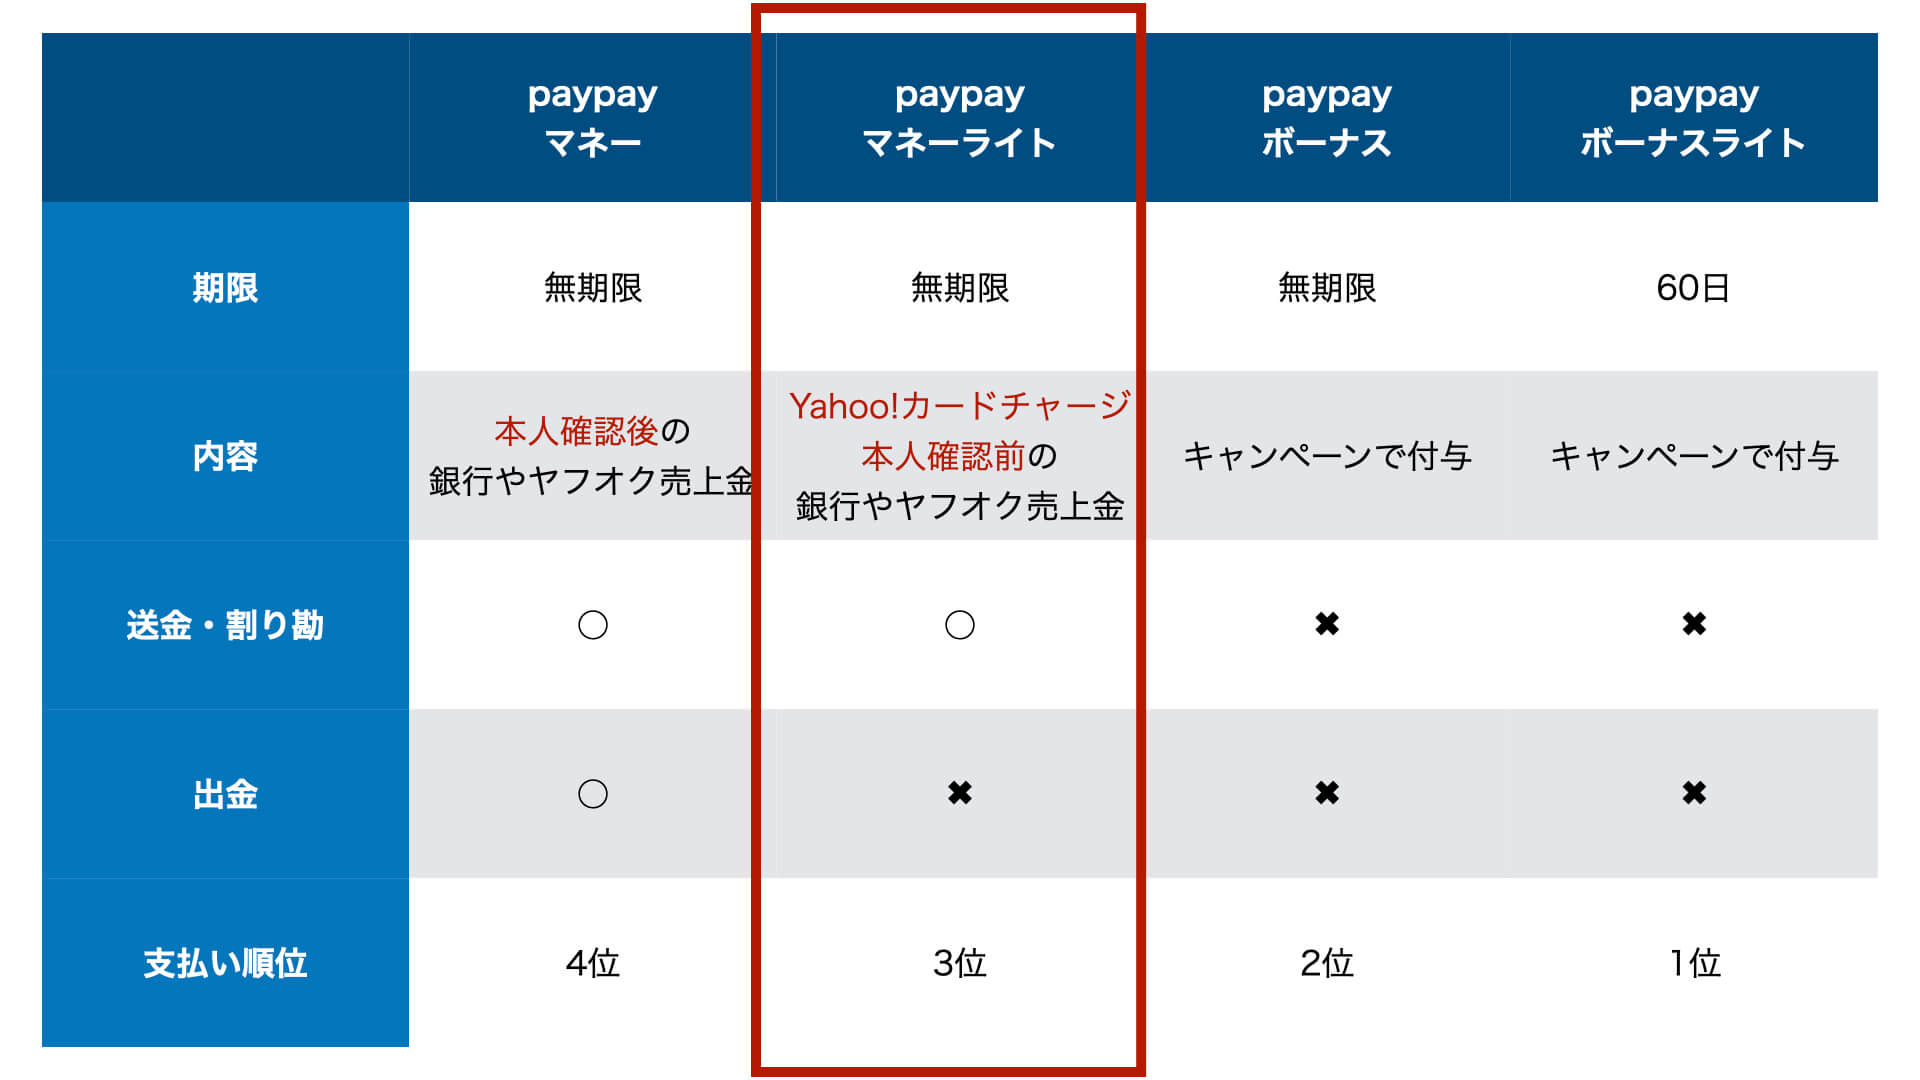 paypayマネーライト